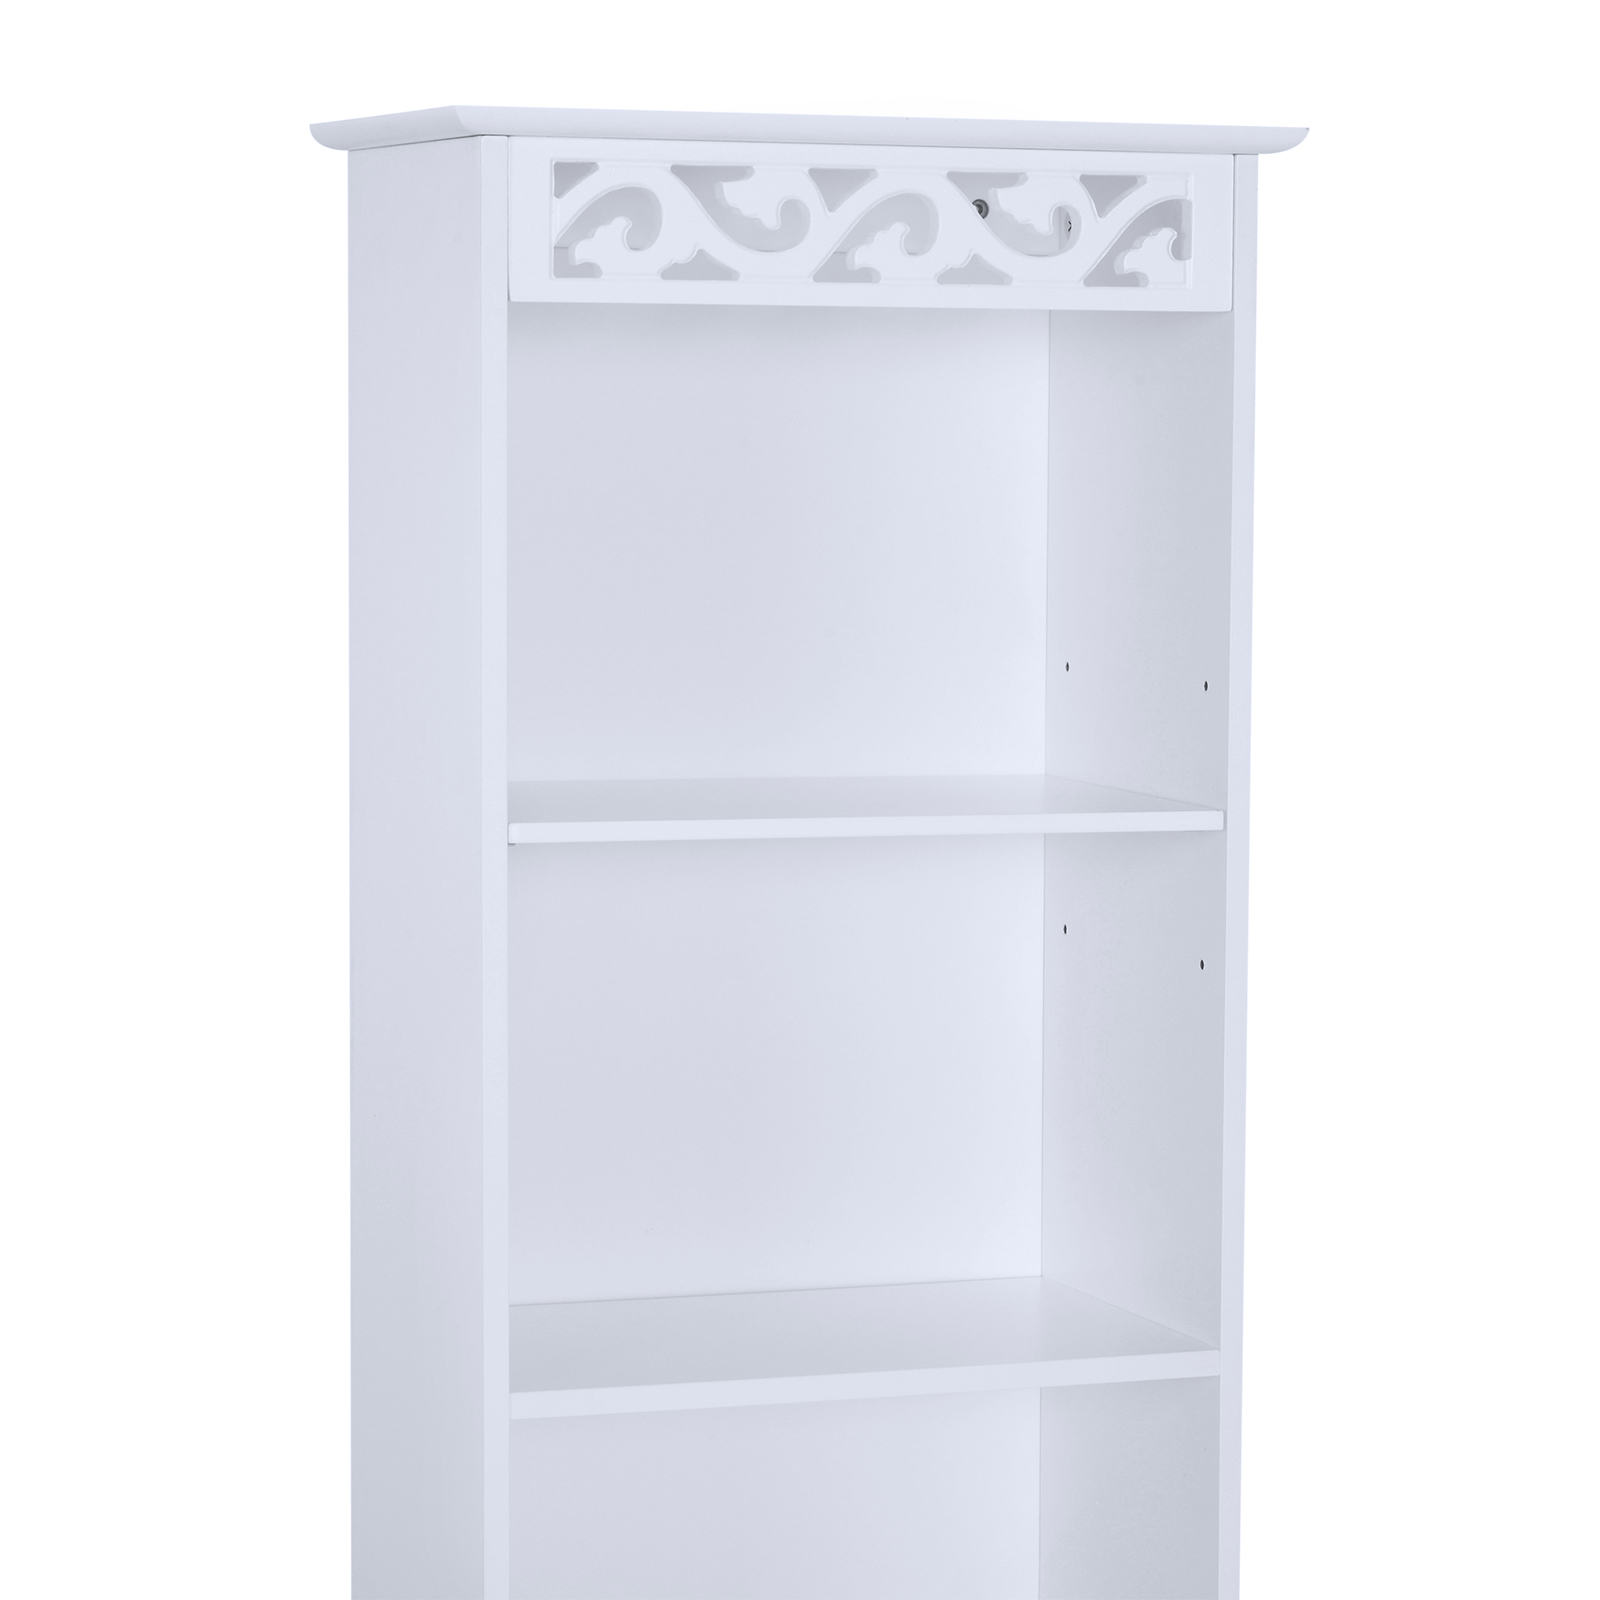 Bathroom-Cabinet-Corner-Shelf-Unit-Drawers-Tower-Cupboard-Wood-Storage-White thumbnail 18